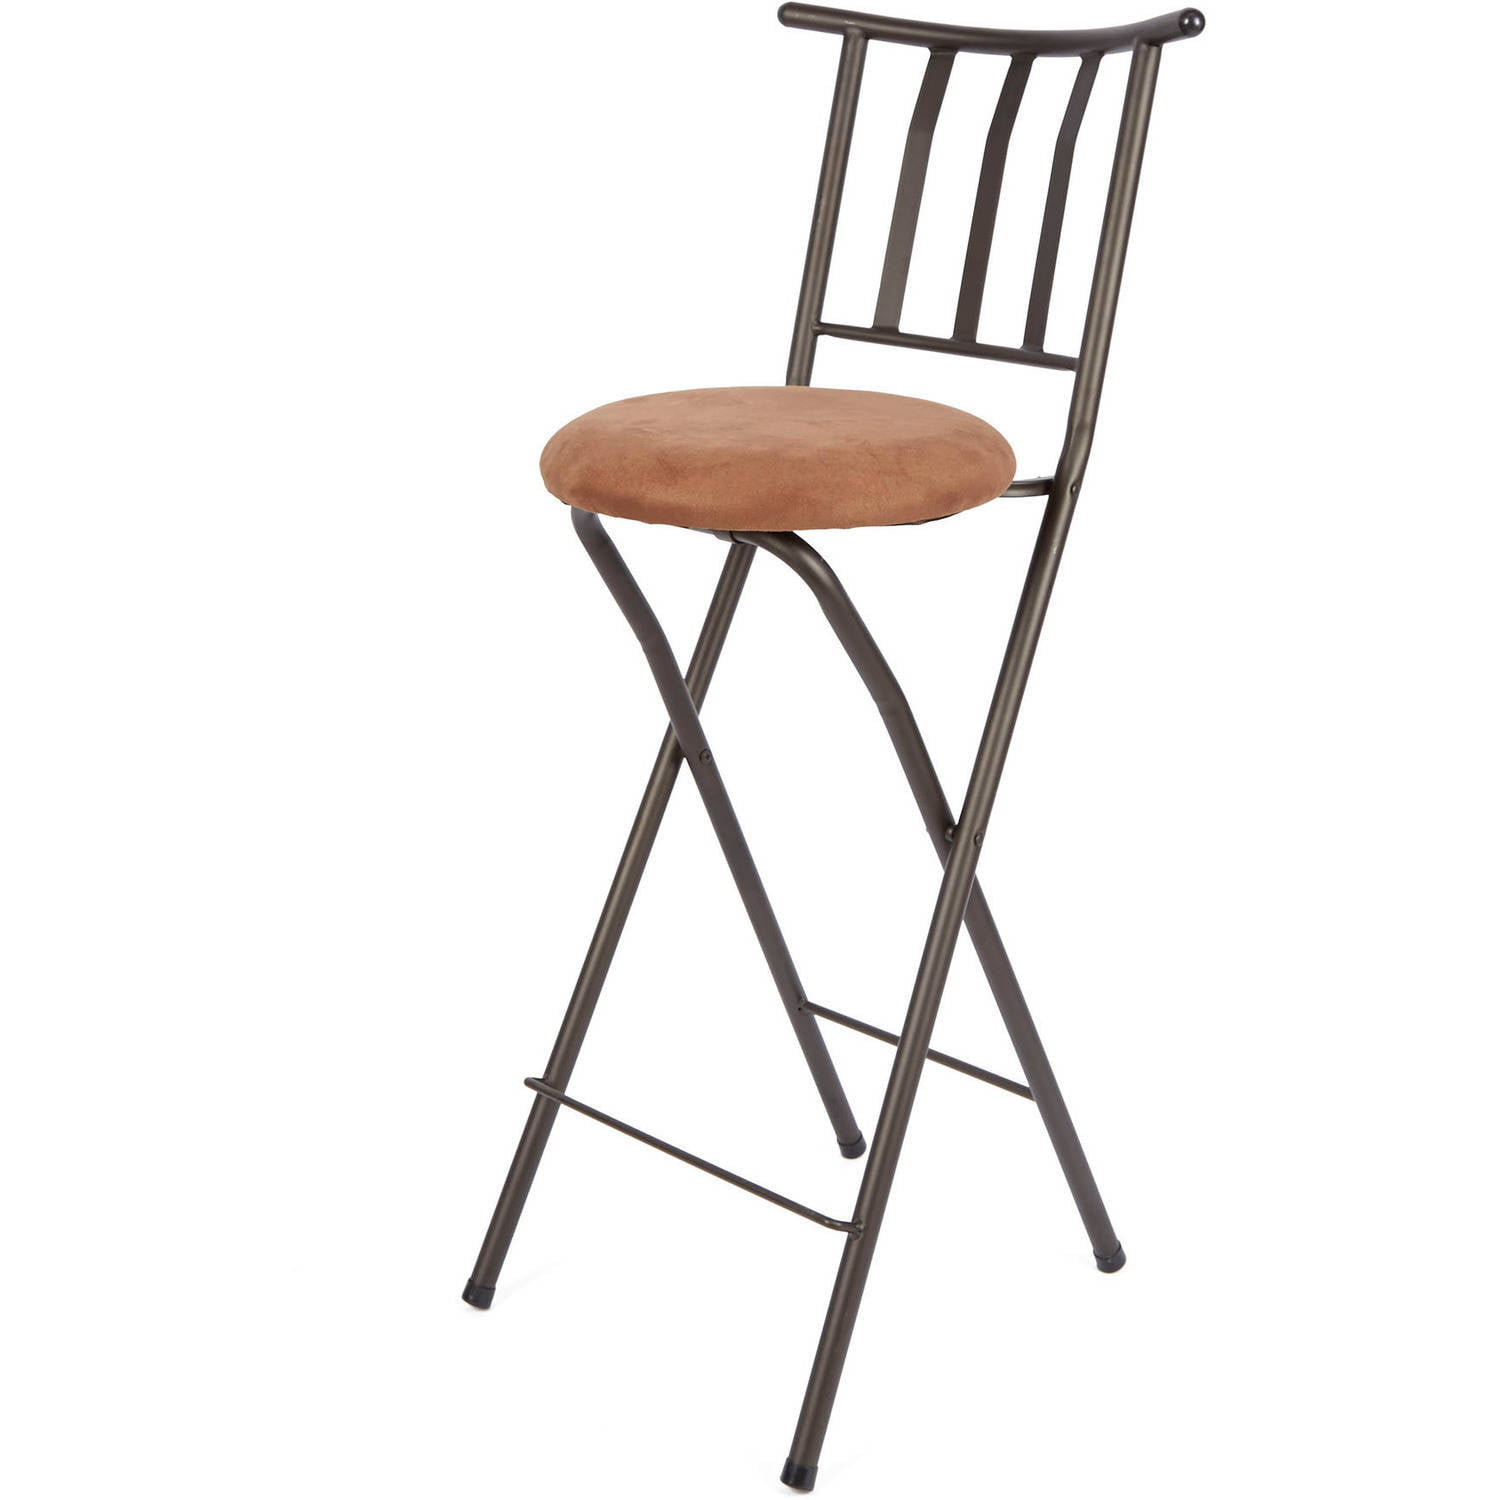 Super Mainstays Slat Back Folding 30 Bronze Bar Stool Multiple Colors Walmart Com Unemploymentrelief Wooden Chair Designs For Living Room Unemploymentrelieforg